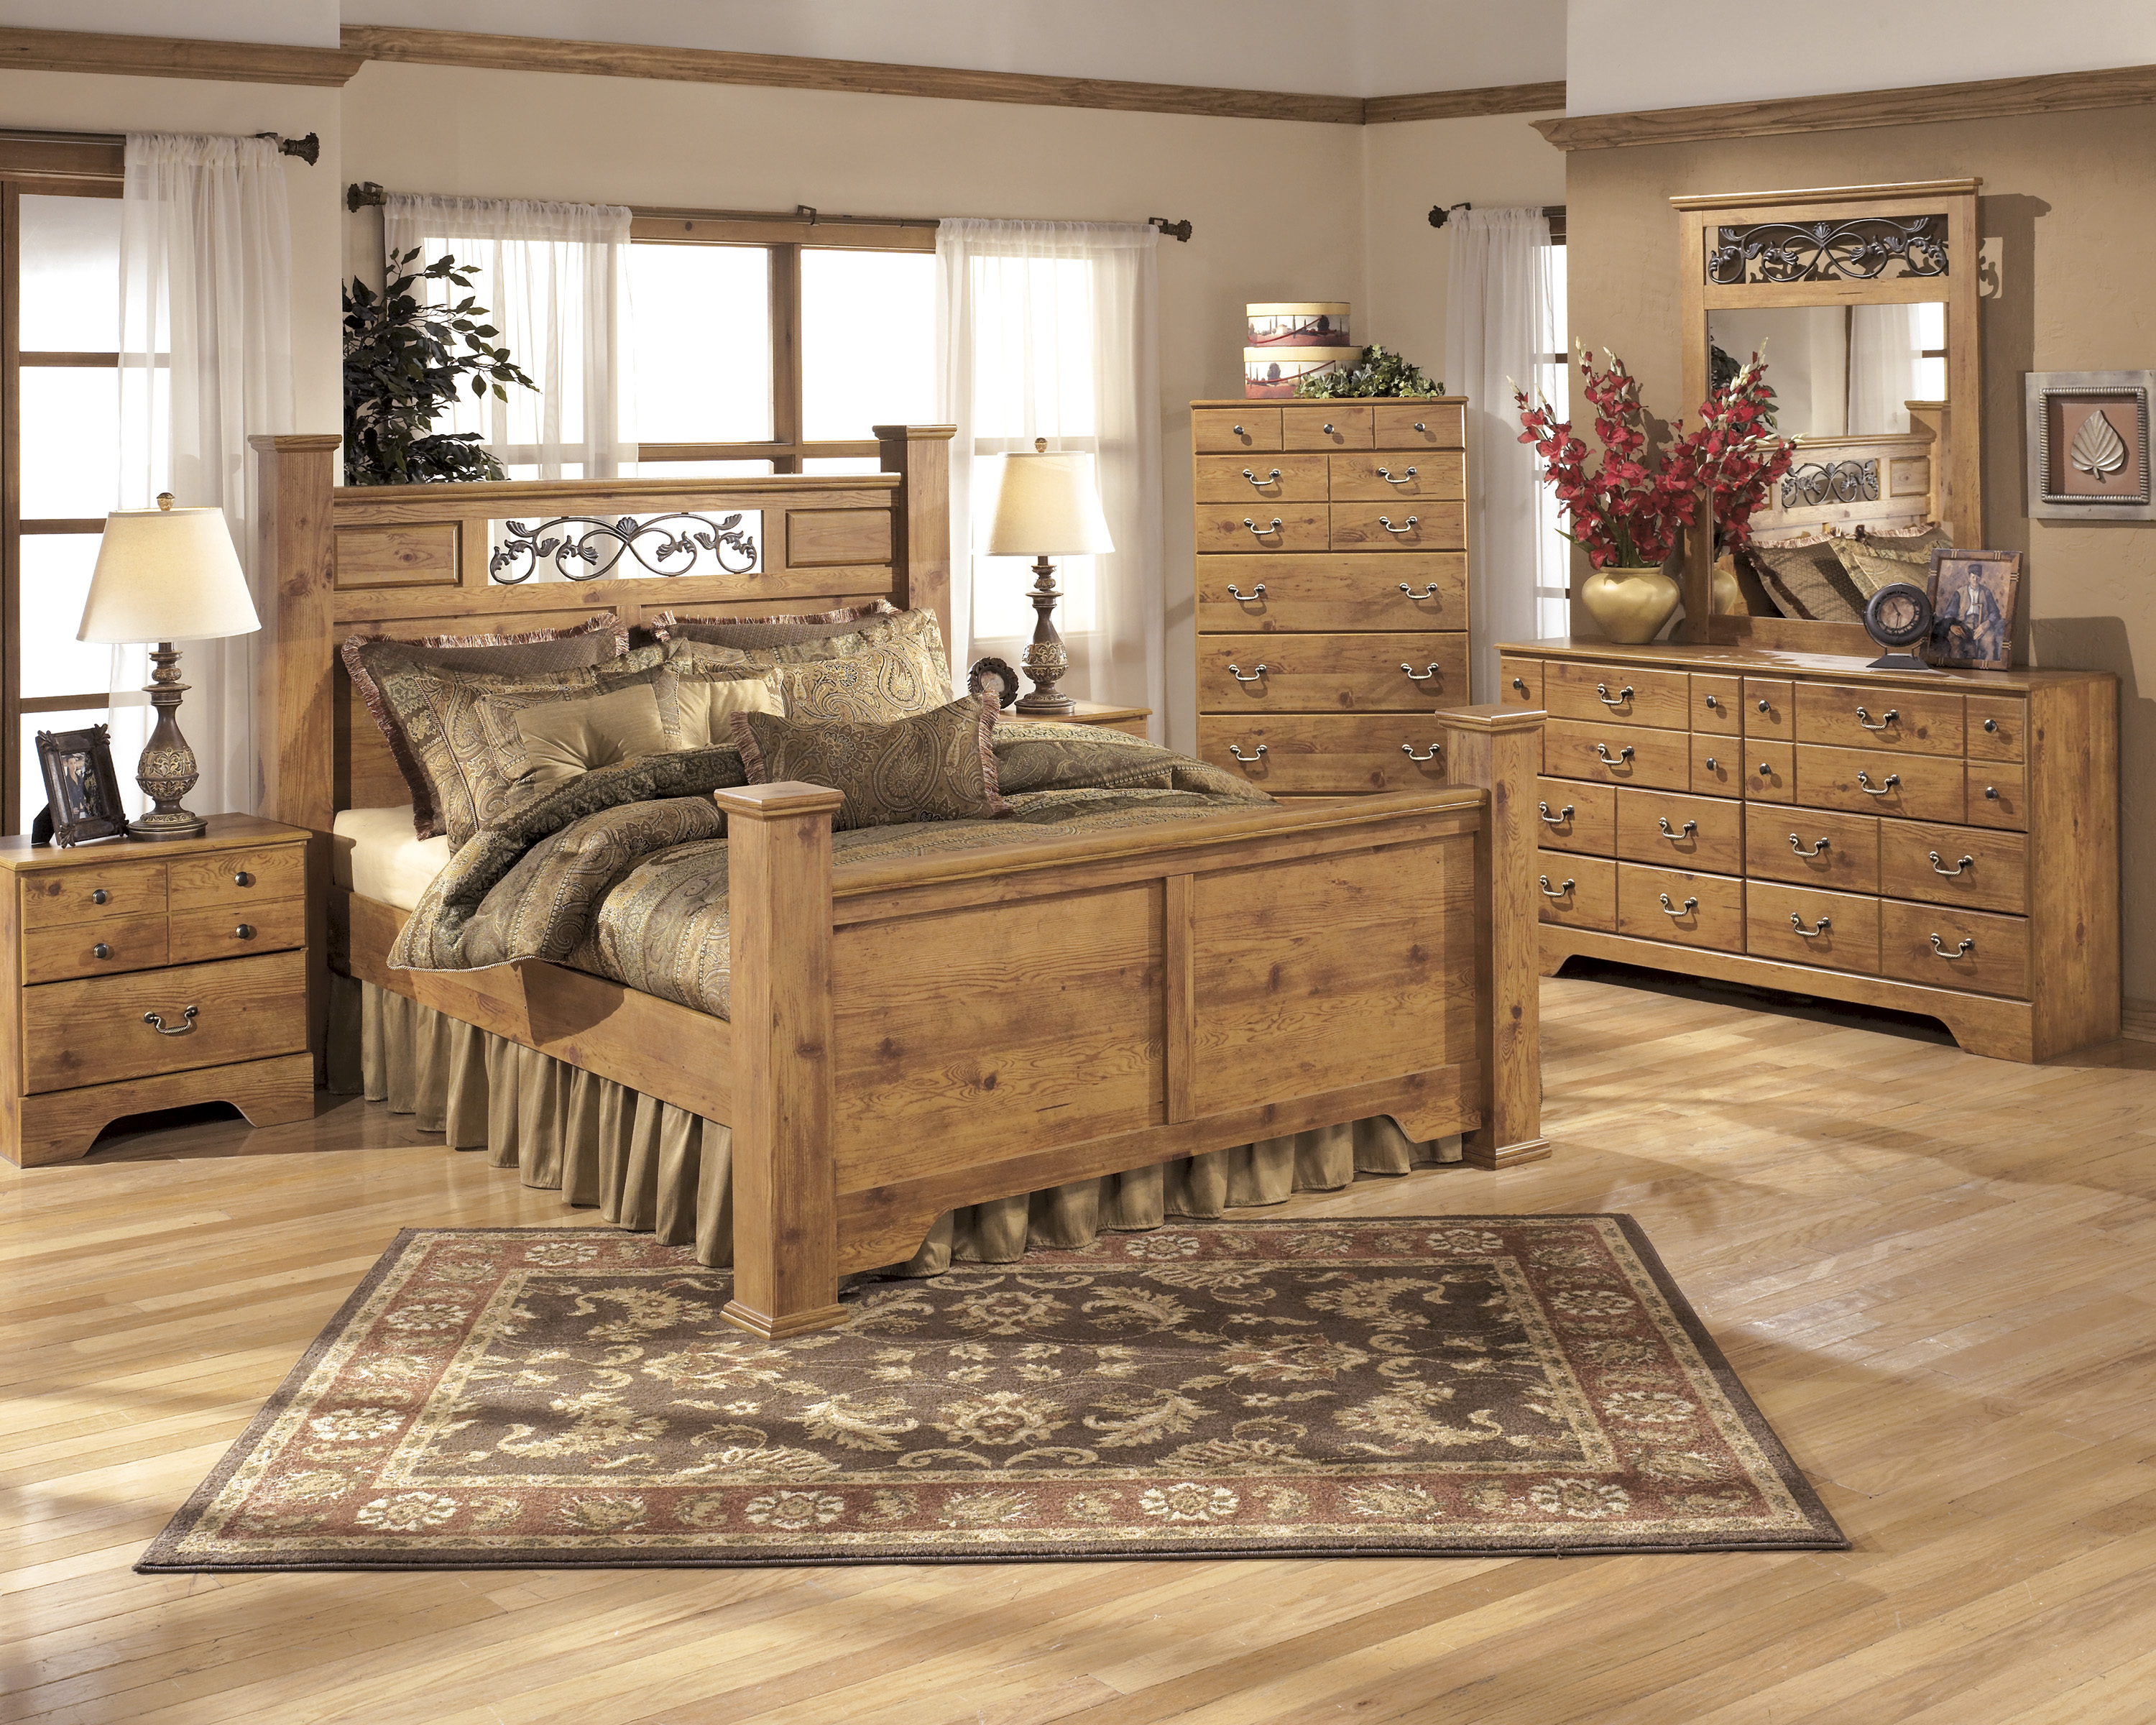 Free TV Products - Ashley furniture store bedroom sets